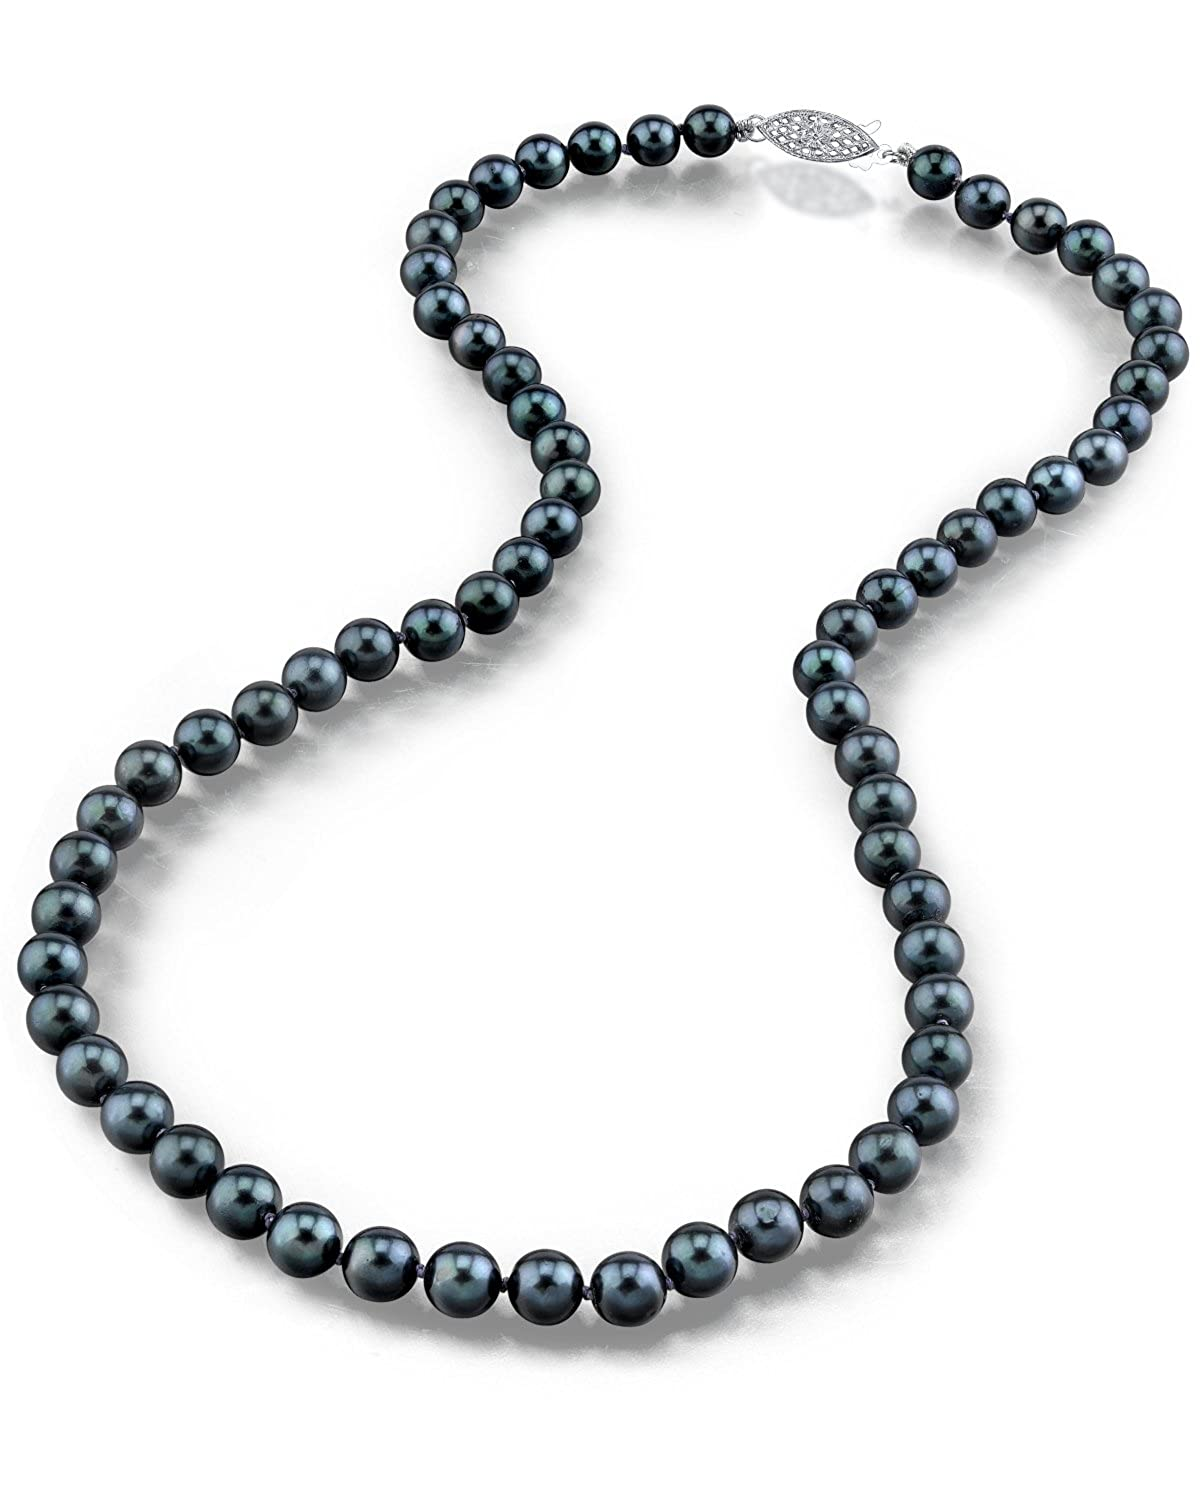 "14K Gold 6.5-7.0mm Black Akoya Cultured Pearl Necklace – AA+ Quality, 17"" Princess Length"